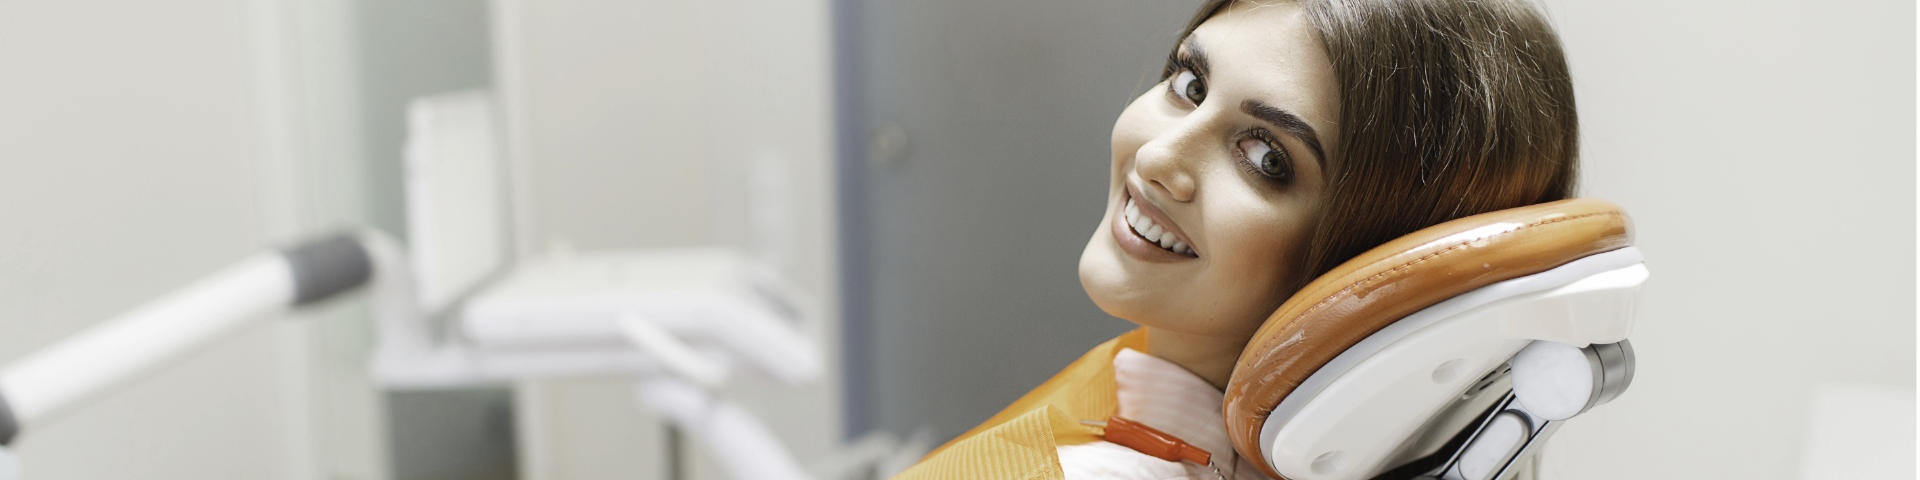 Satisfied young woman with perfect smile in a dental chair.